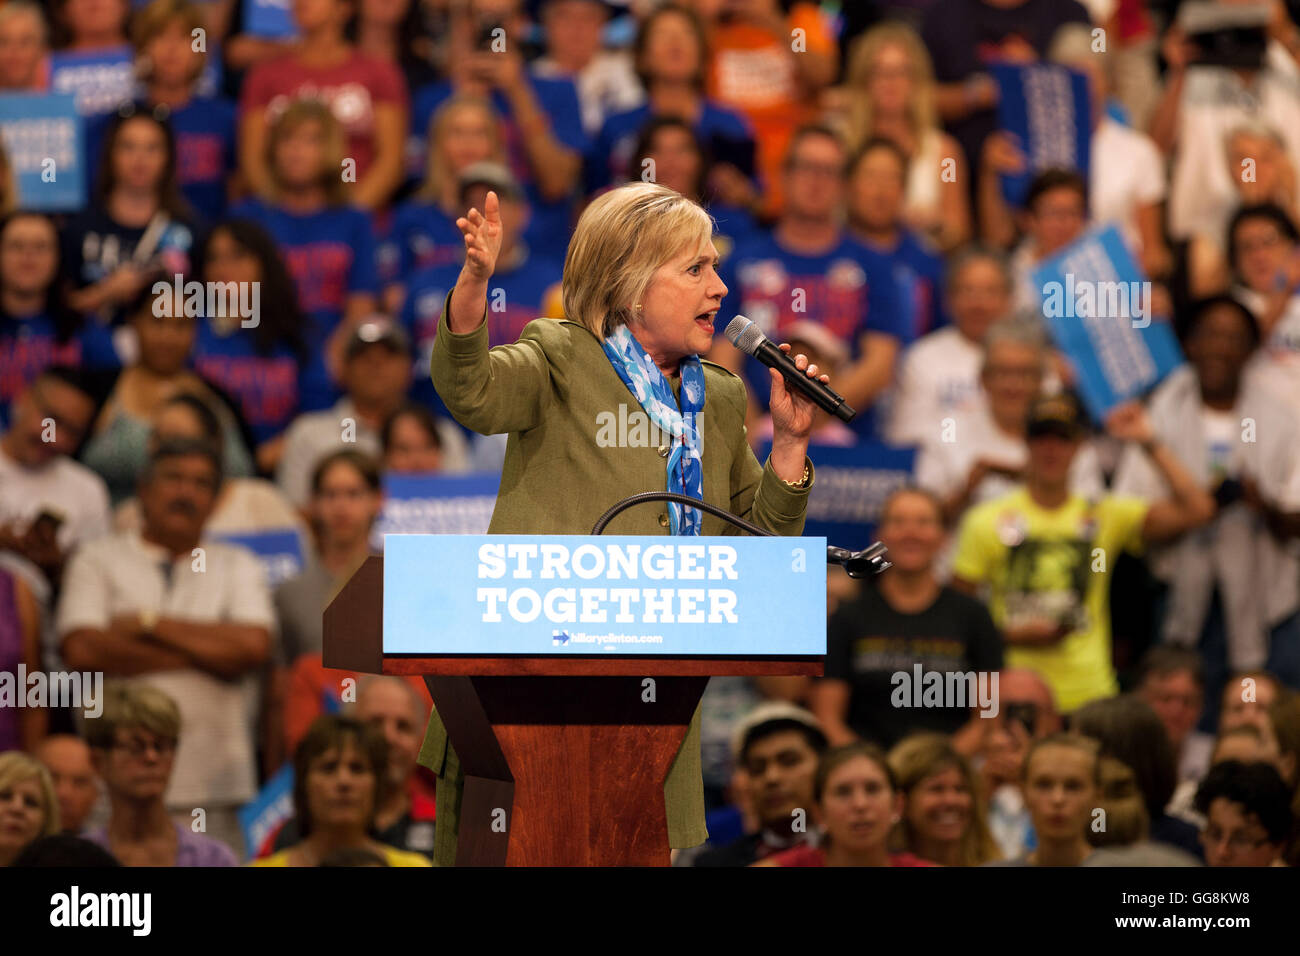 Commerce City, Colorado, USA  3rd Aug, 2016  Hillary Clinton rallies